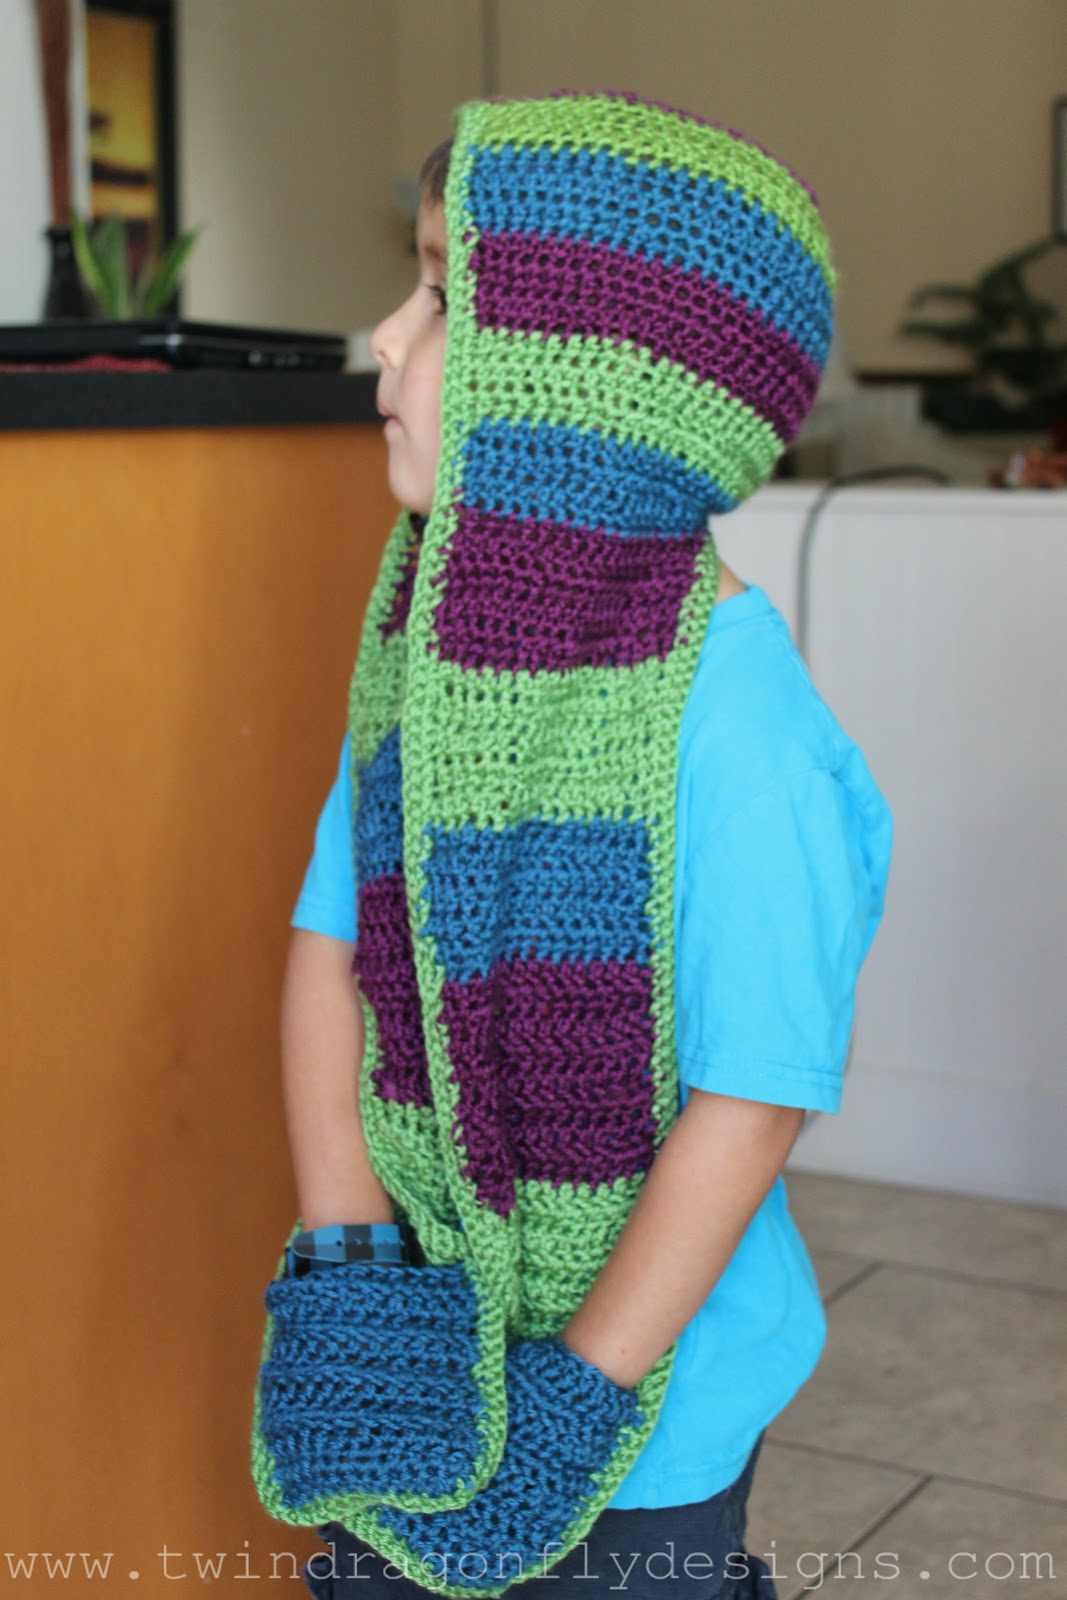 Crochet Hooded Scarf Pattern Awesome Design